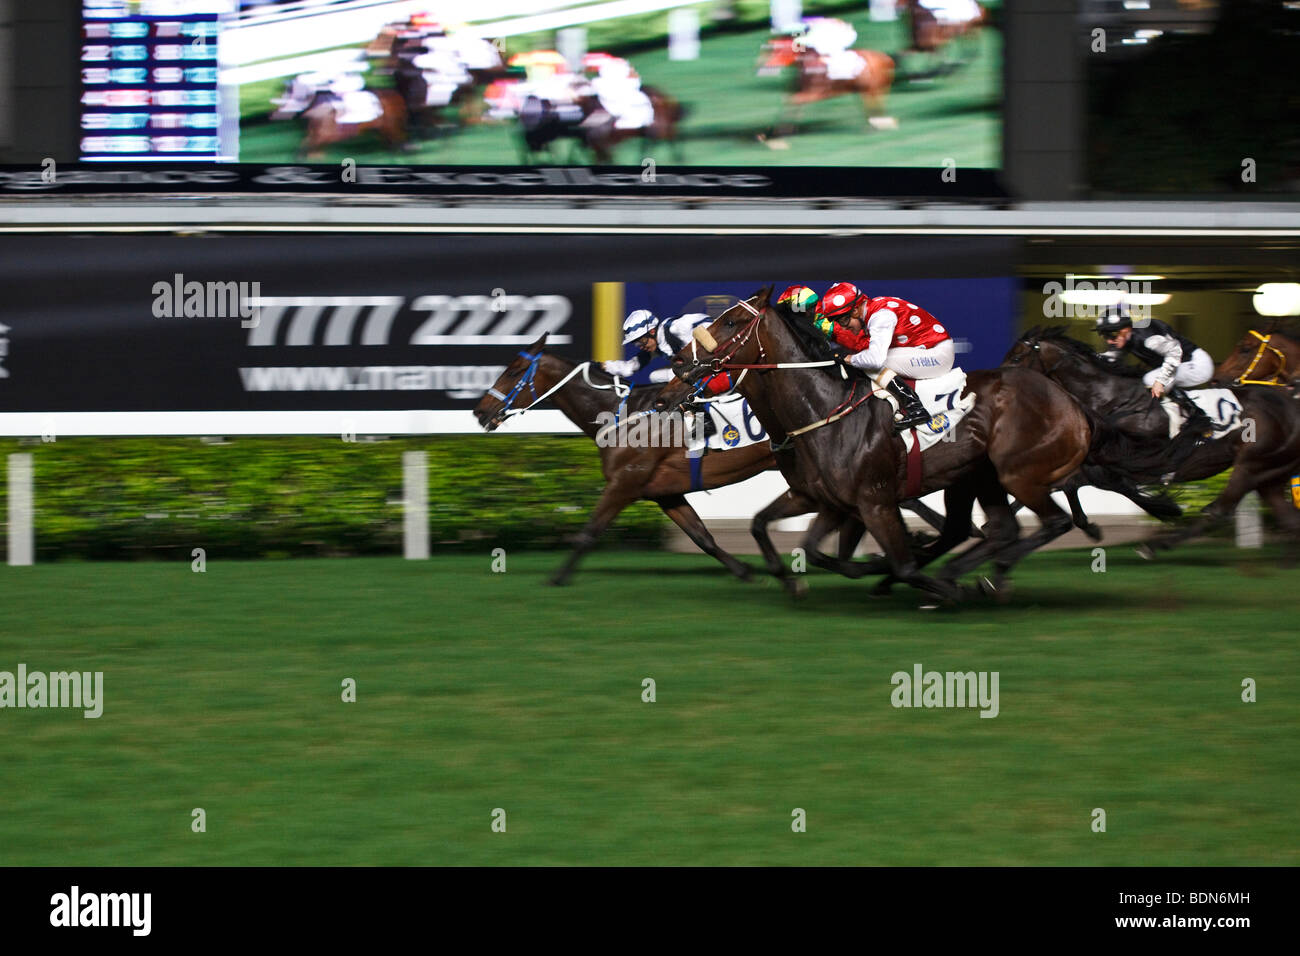 Horses galloping towards the finish during a night horse racing event at Happy Valley race course in Hong Kong. - Stock Image